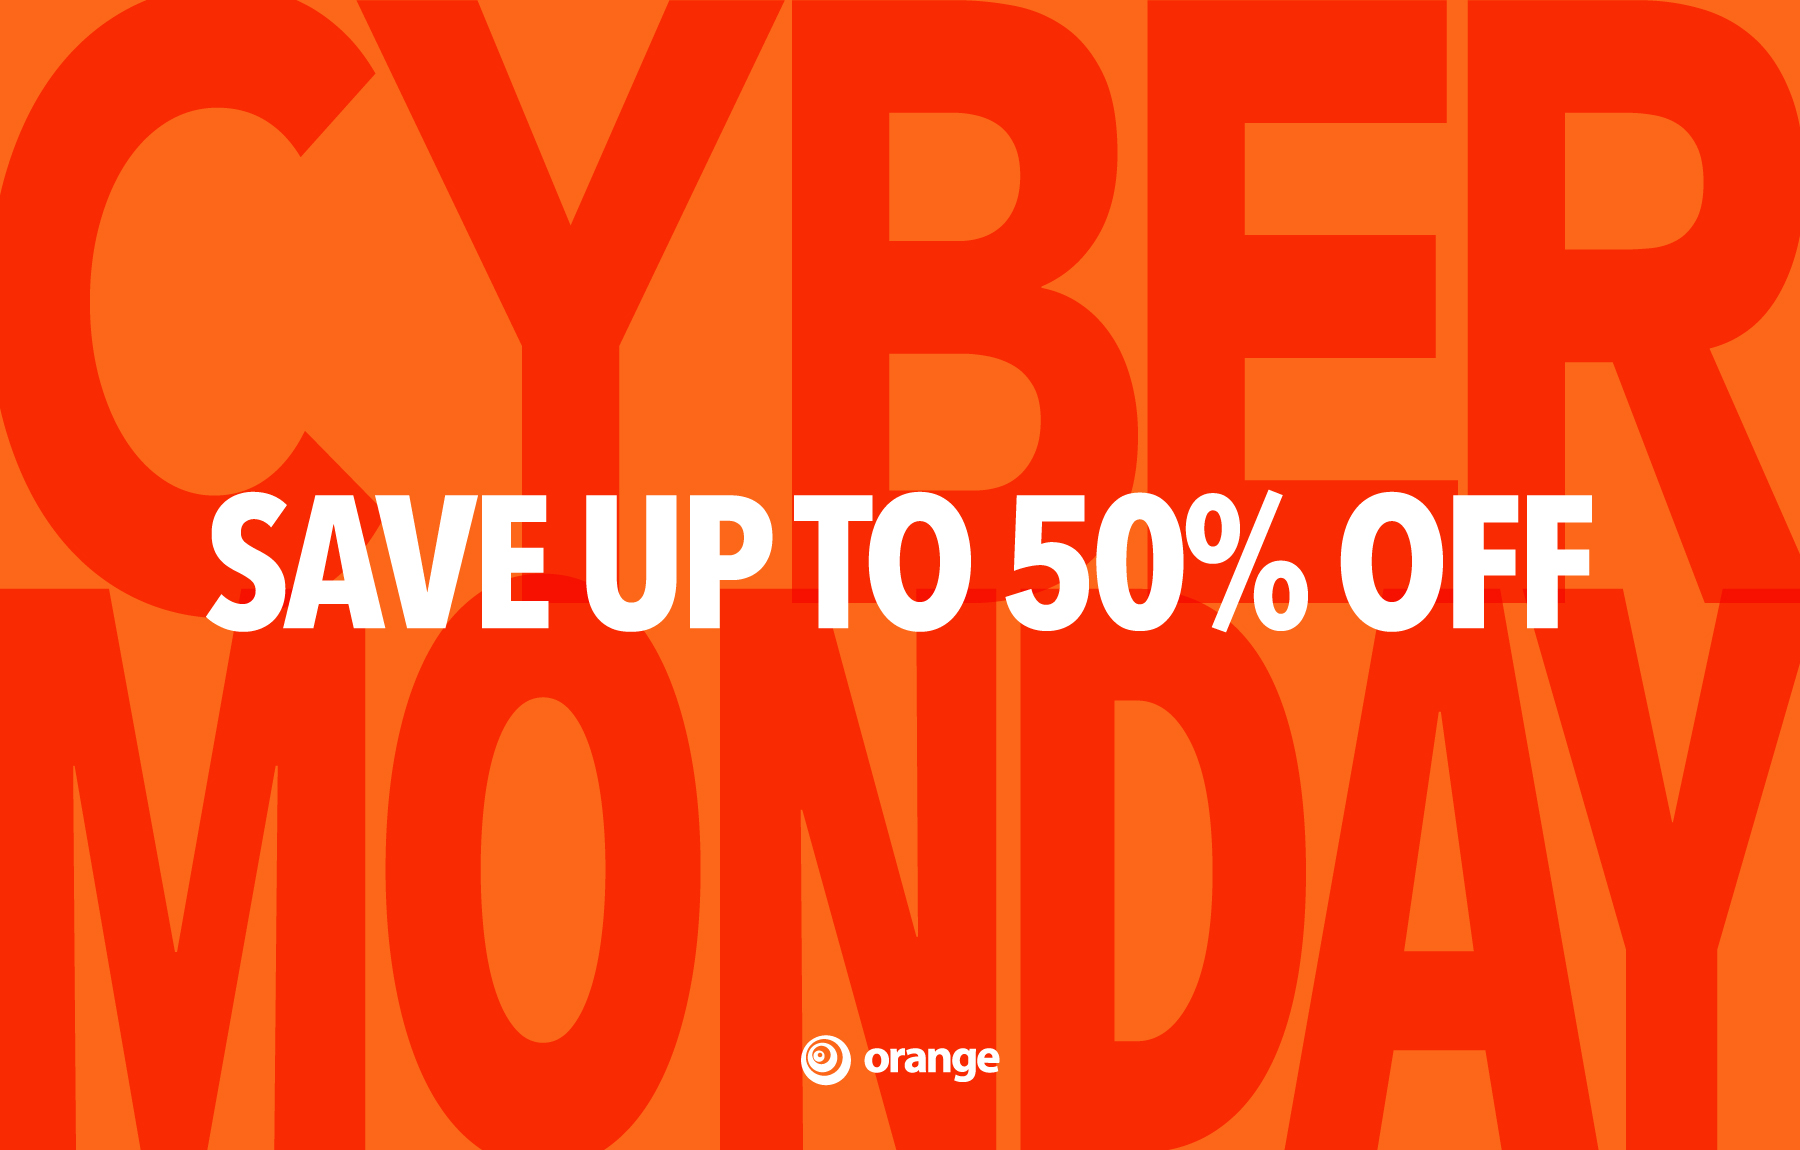 Cyber Monday Deals Are on the Way!